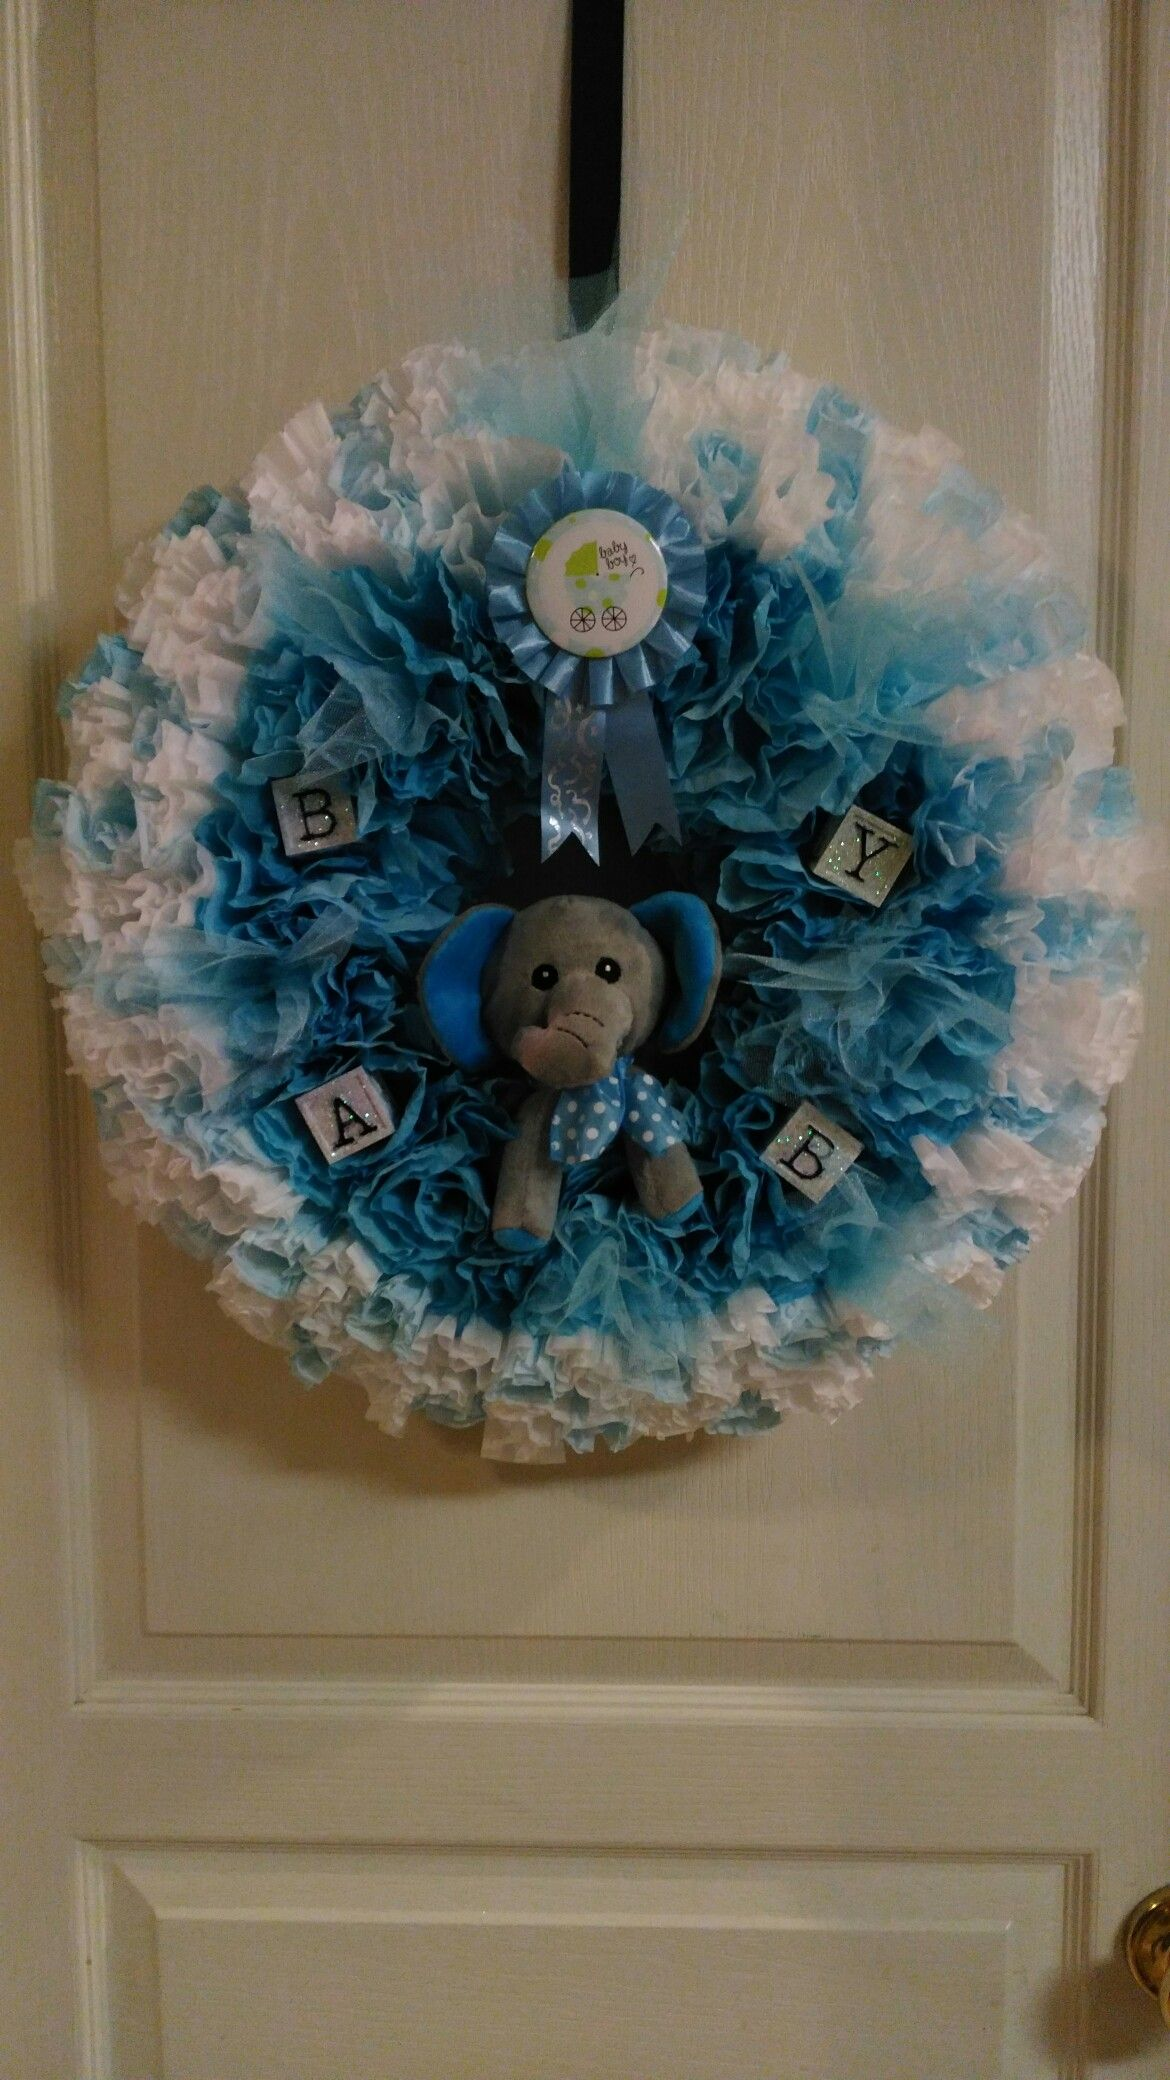 It's a Boy! Welcome home wreath.